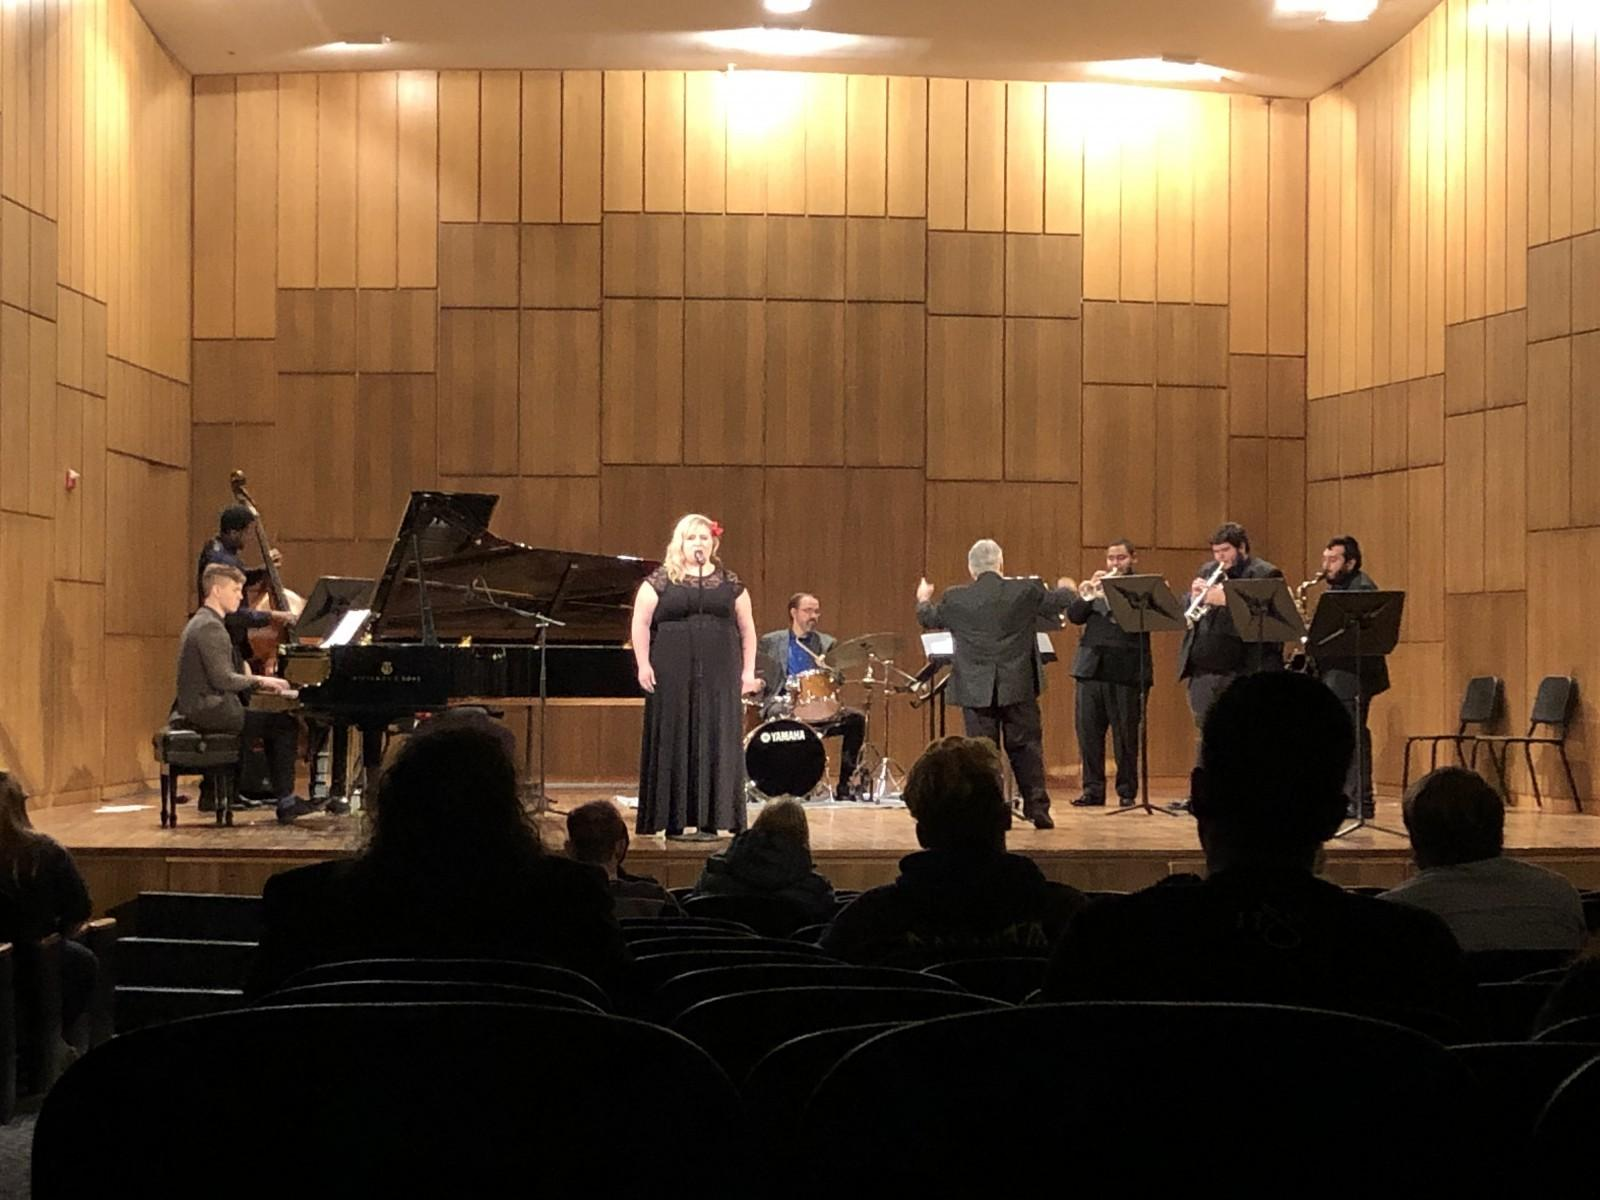 jazz concert brings pizzazz